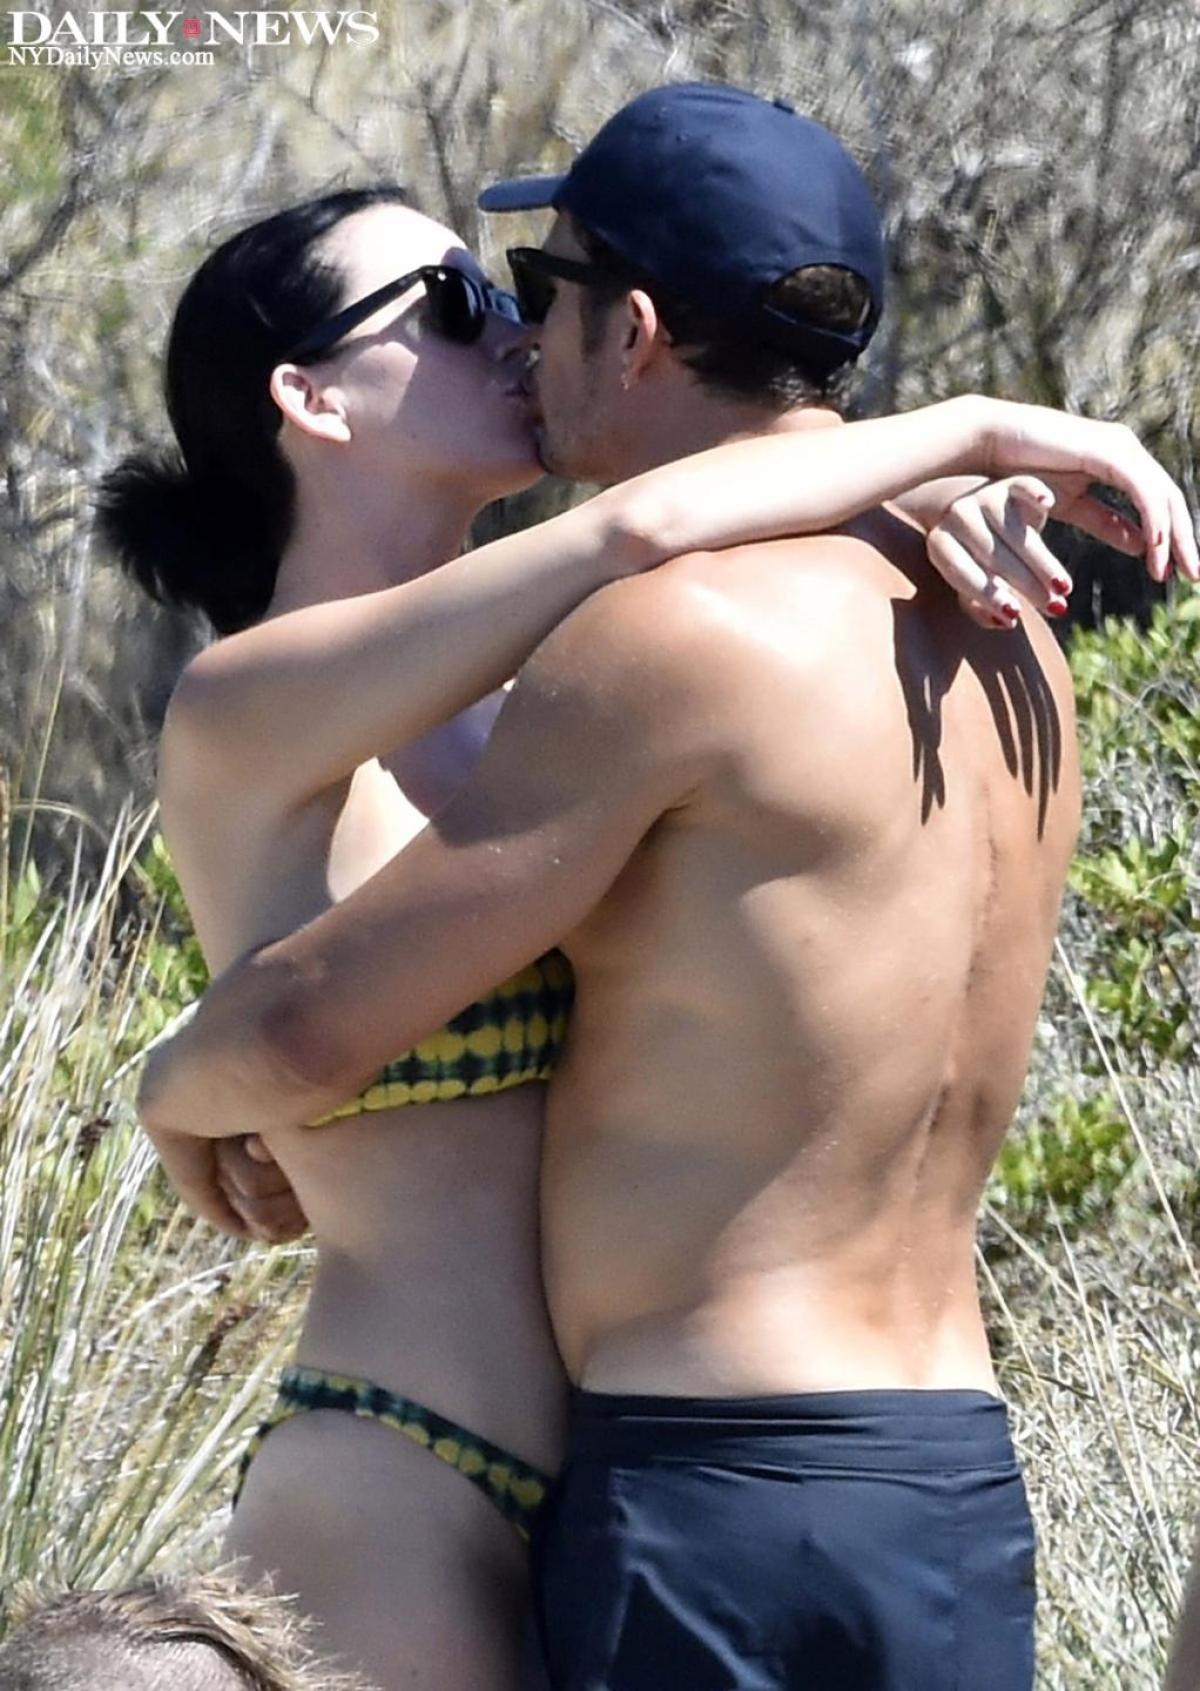 Orlando Bloom Strips At A Vacay With Katy Perry! [SFW PHOTOS]